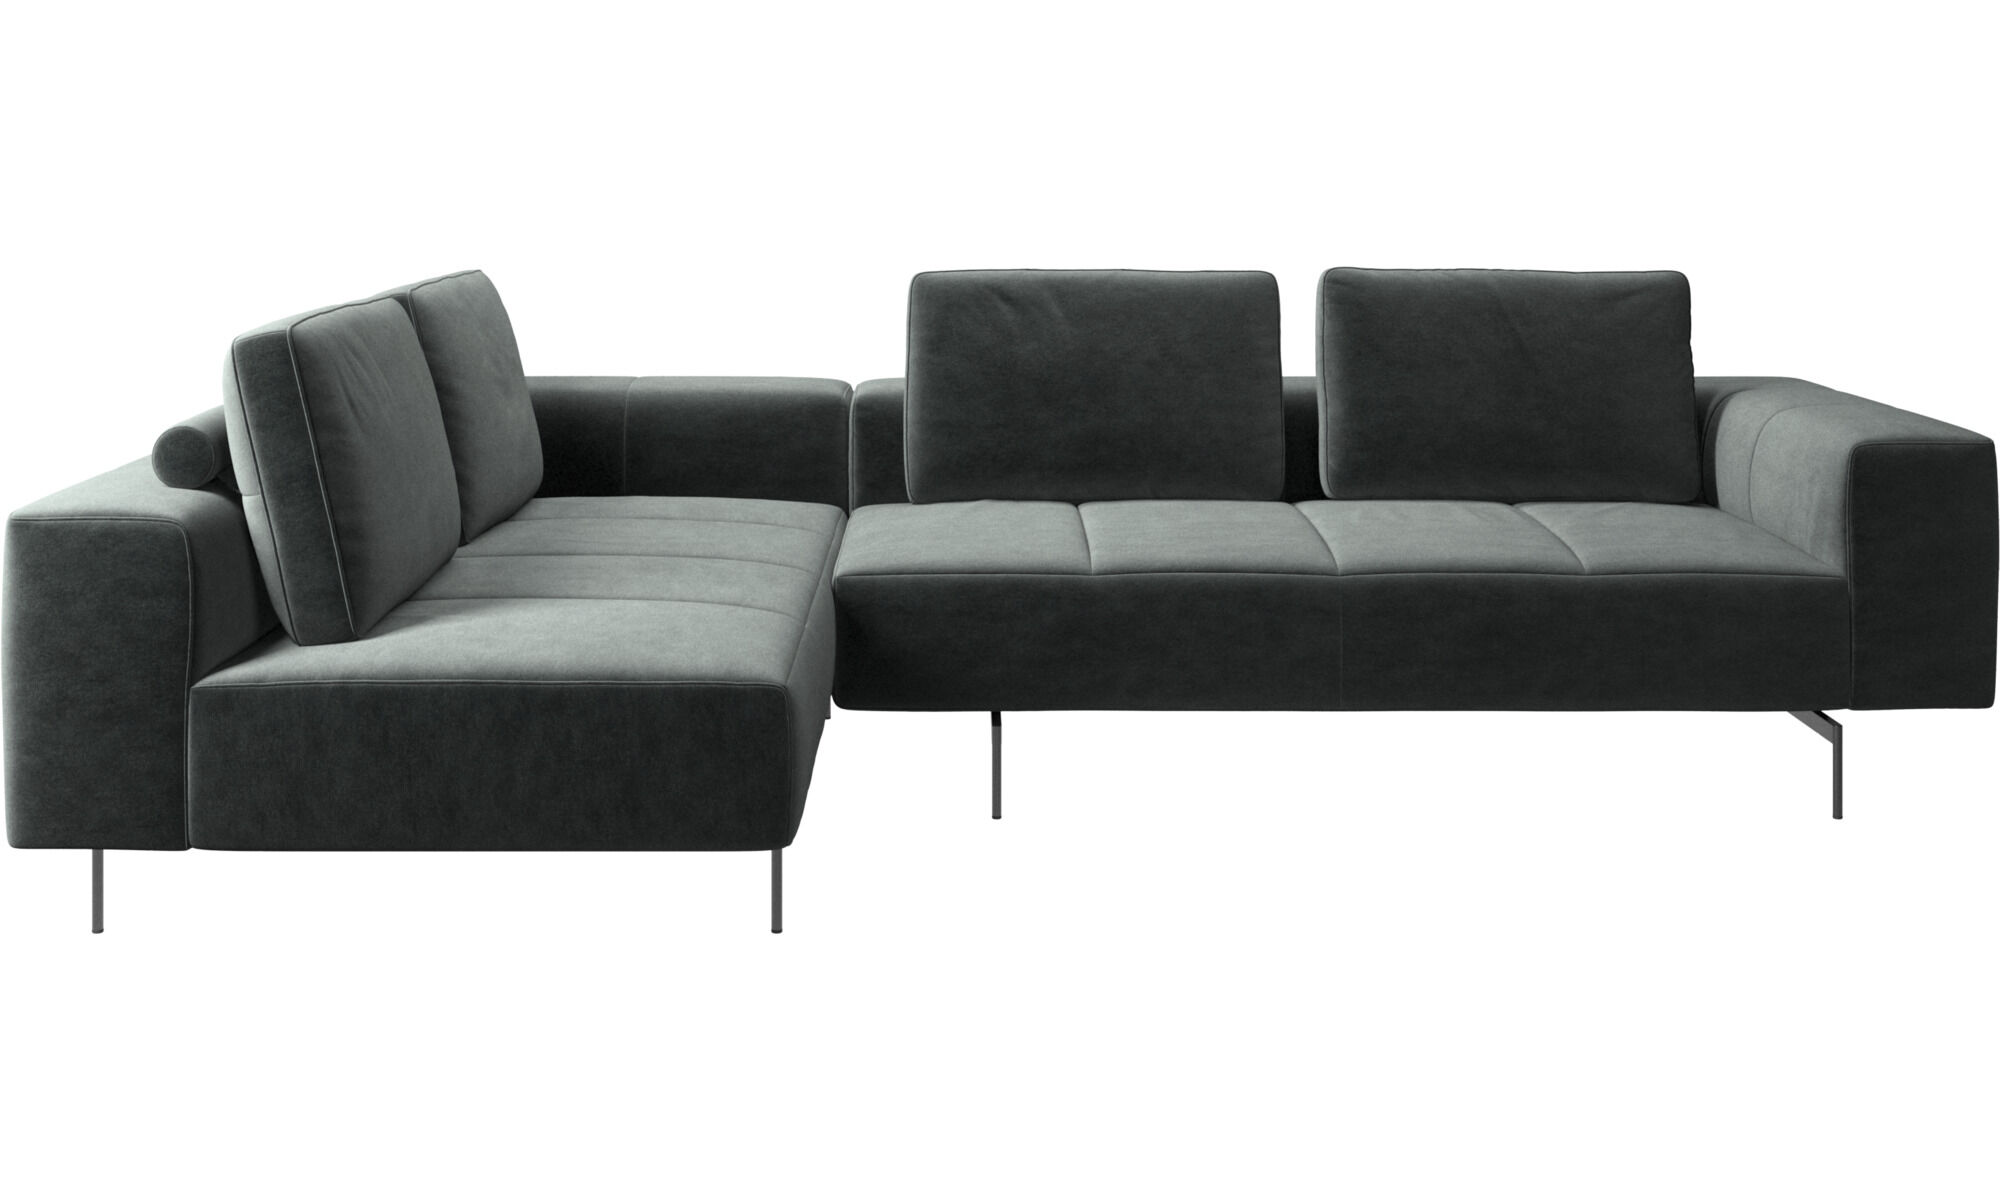 Old Fashioned L Shaped Sofa Discover Contemporary Designer Sofas Boconcept